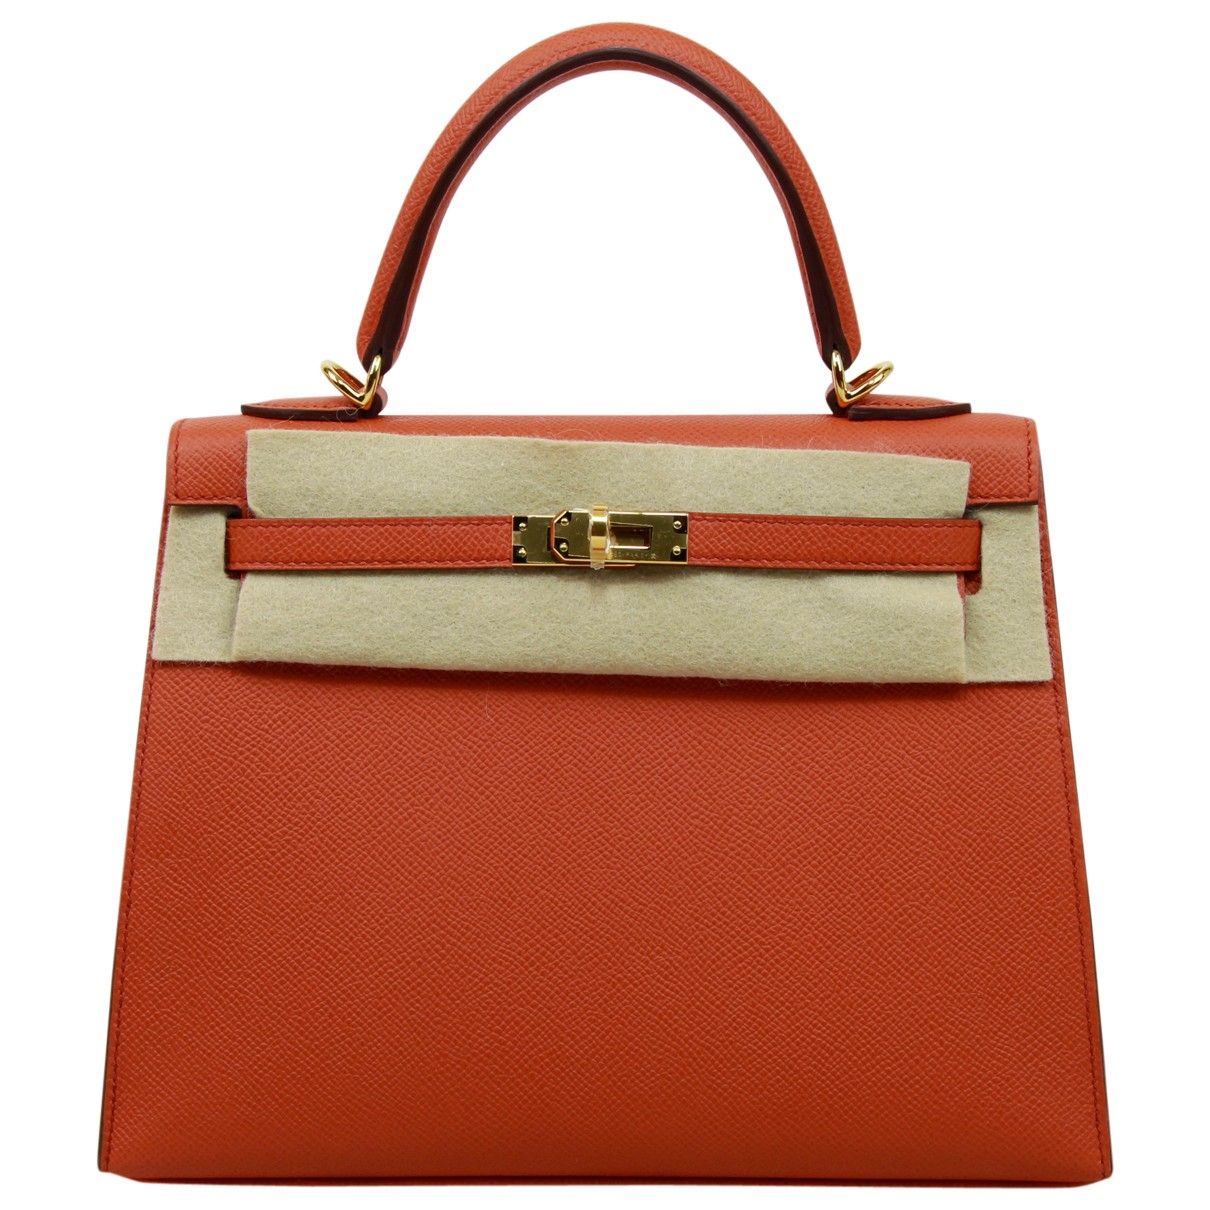 Hermès Kelly 25 Orange Leather handbag for Women \N